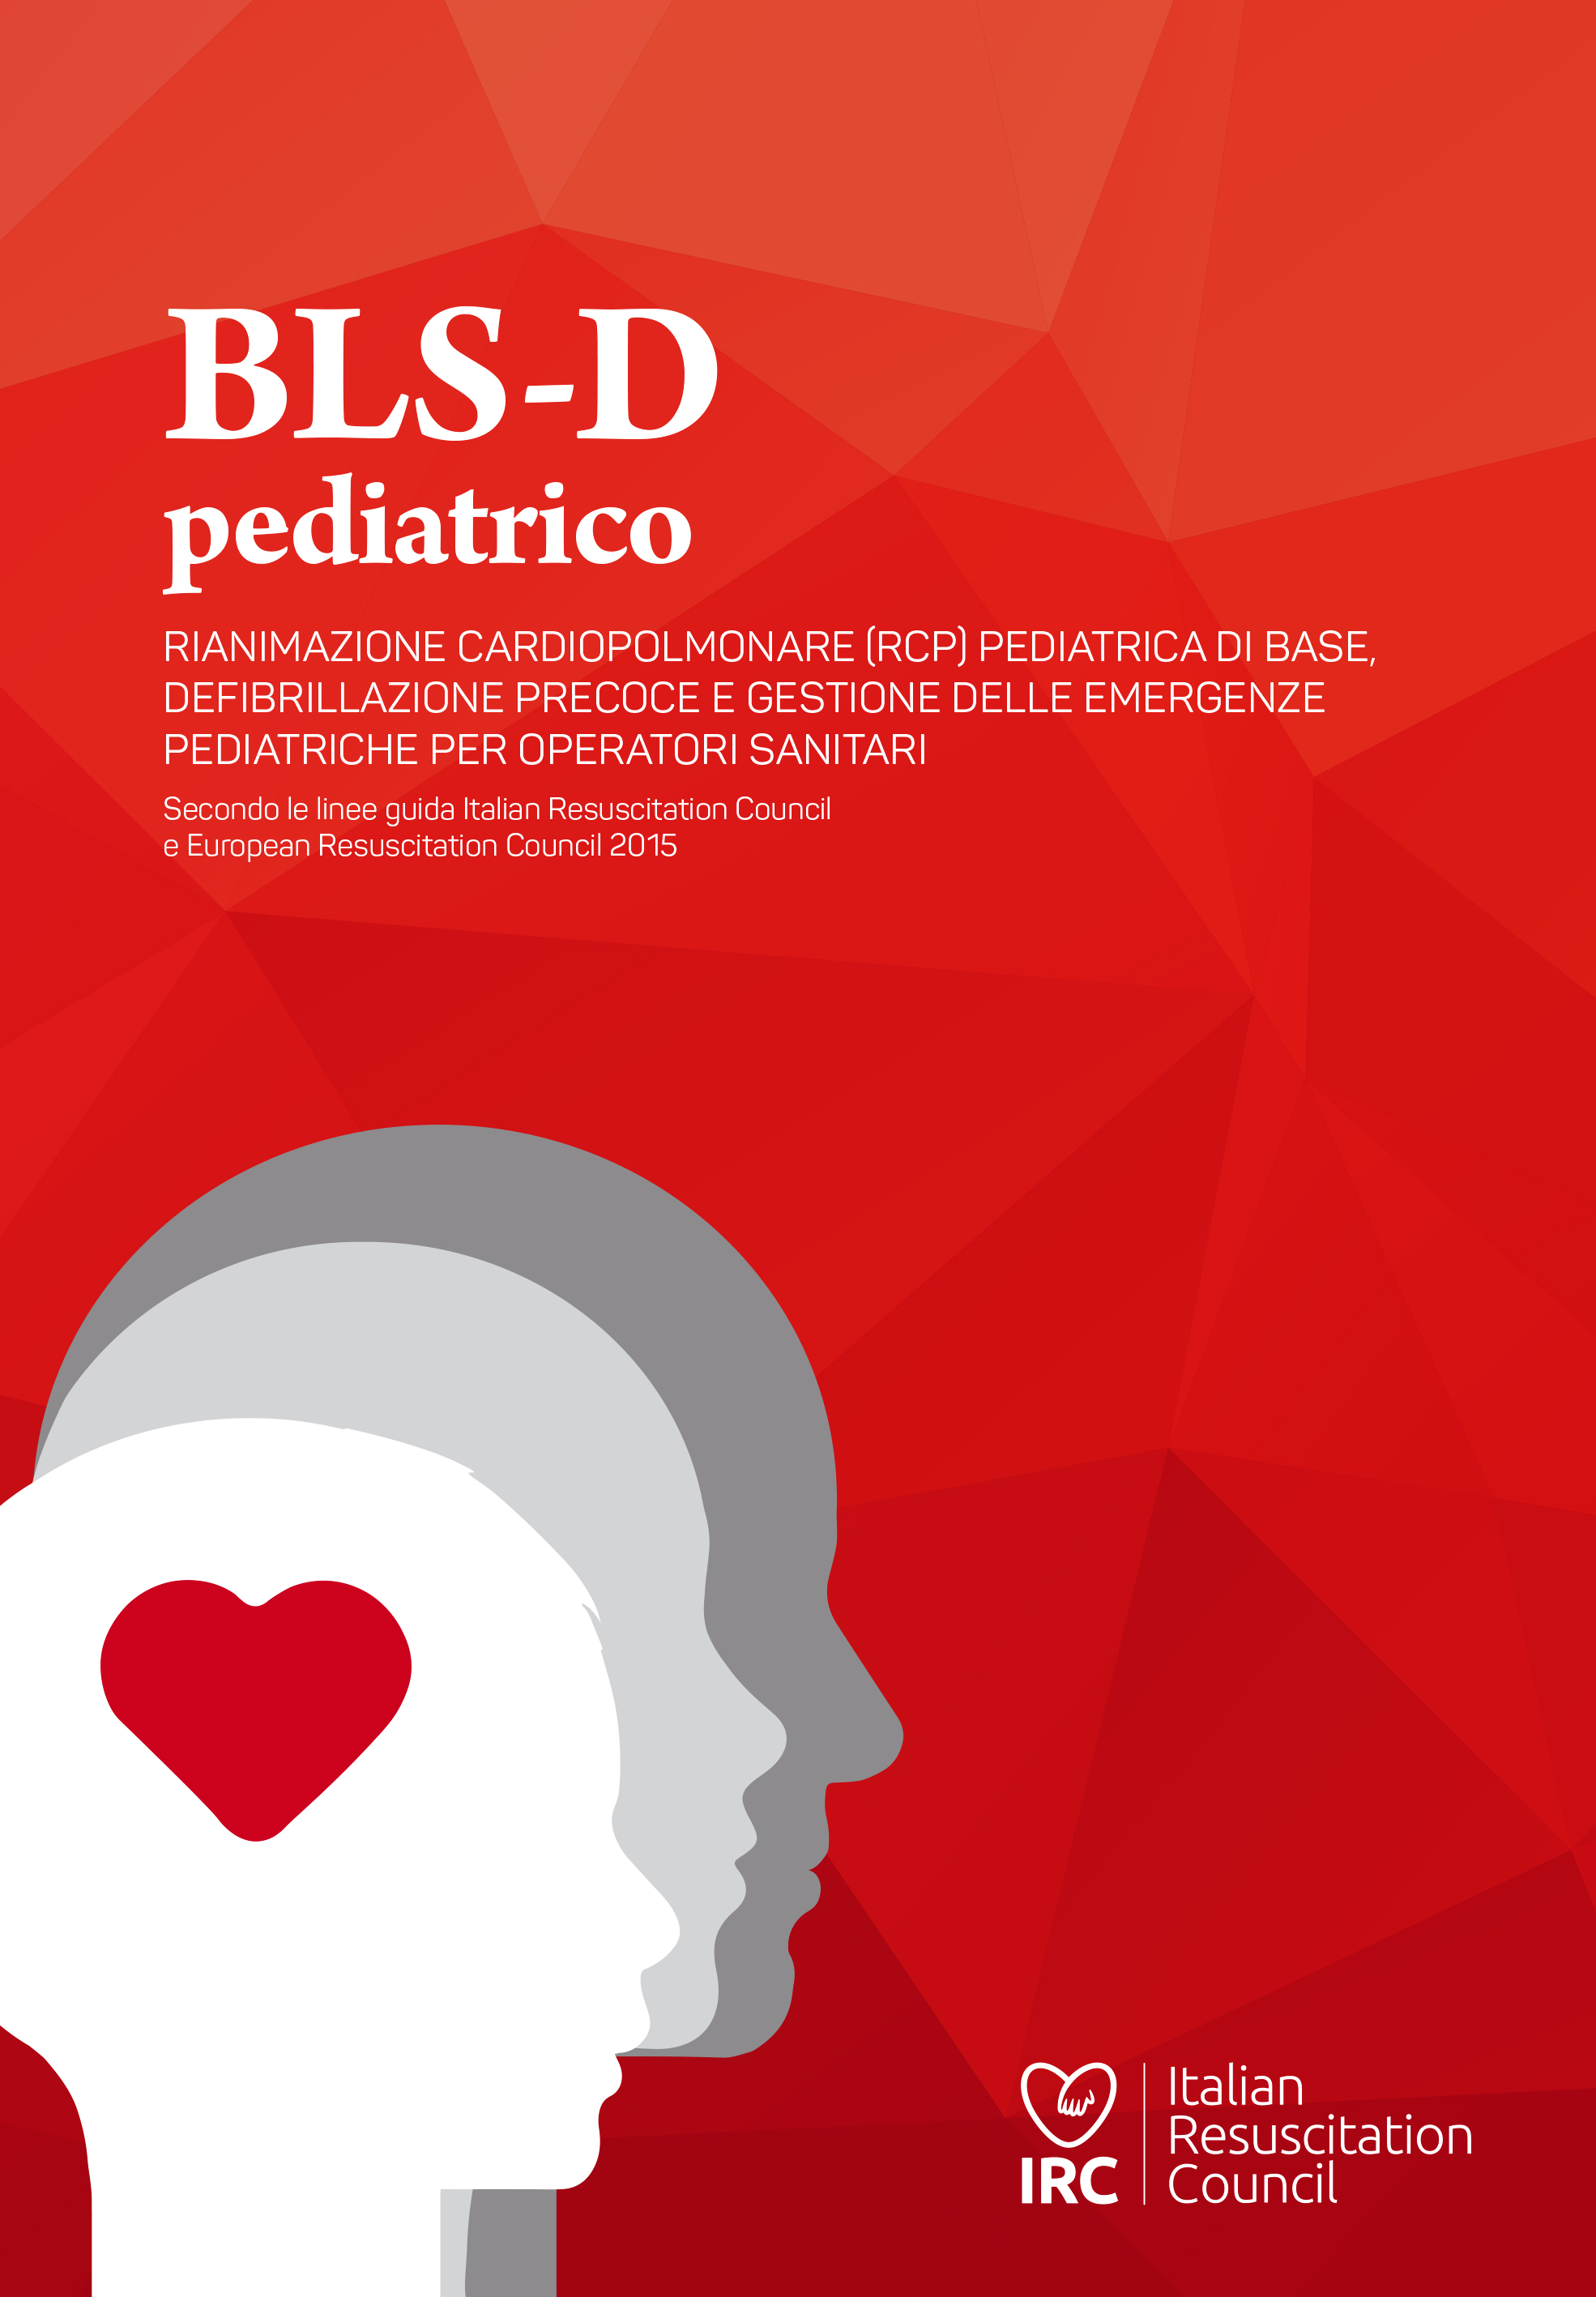 BLS-D Pediatrico